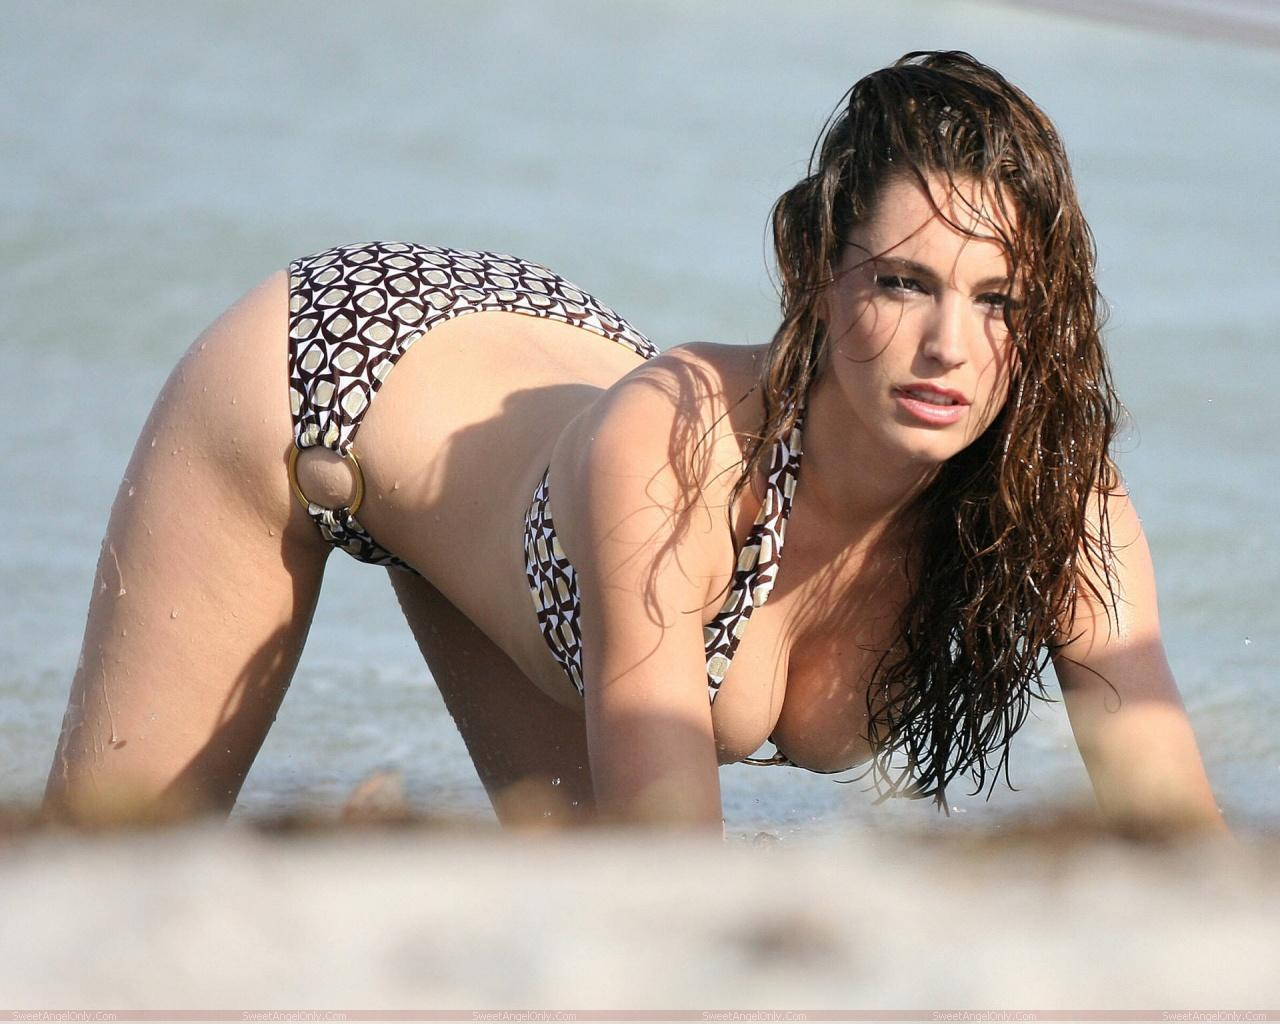 http://2.bp.blogspot.com/-8ctE6HOKcjI/TXjHpOSjPVI/AAAAAAAAFUY/6H3mr9yhot0/s1600/actress_kelly_brook_hot_wallpaper_sweetangelonly_33.jpg